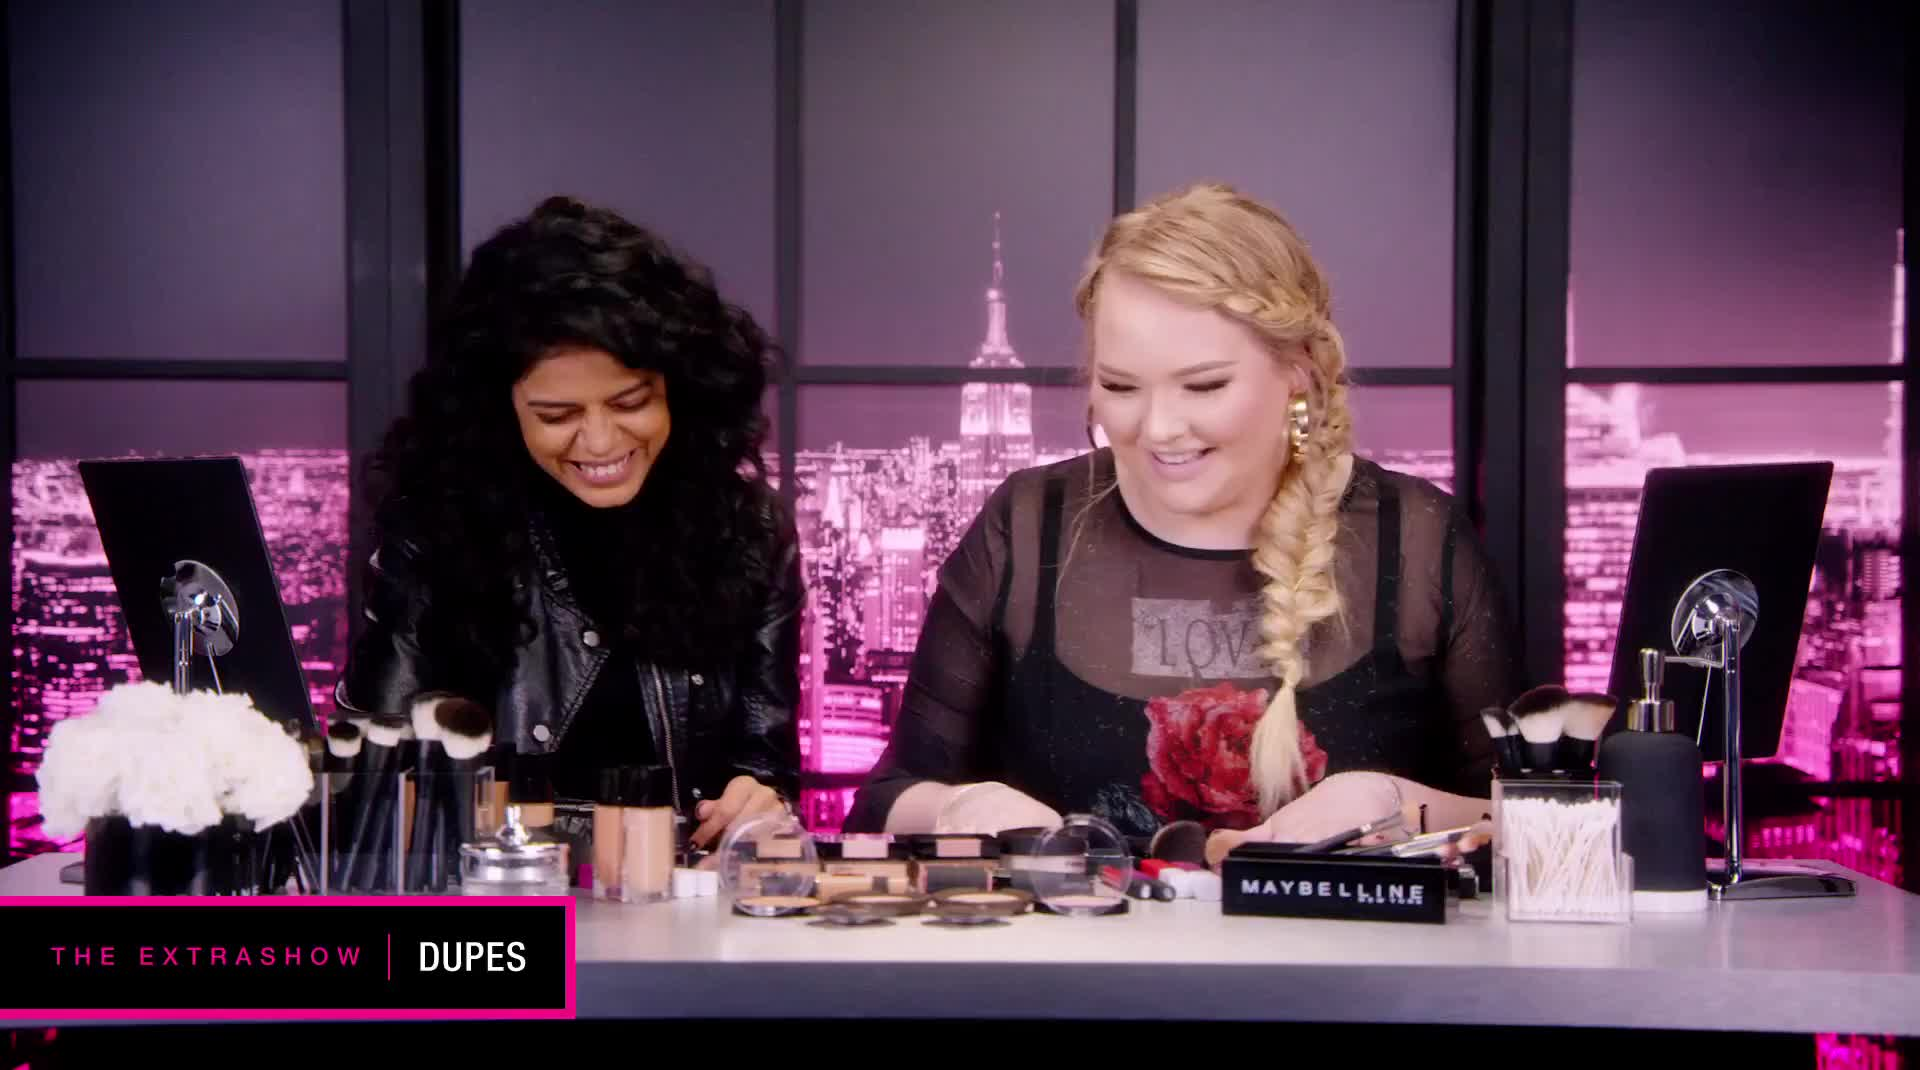 Extra Show 4: Make Dupes Happen | Maybelline New York